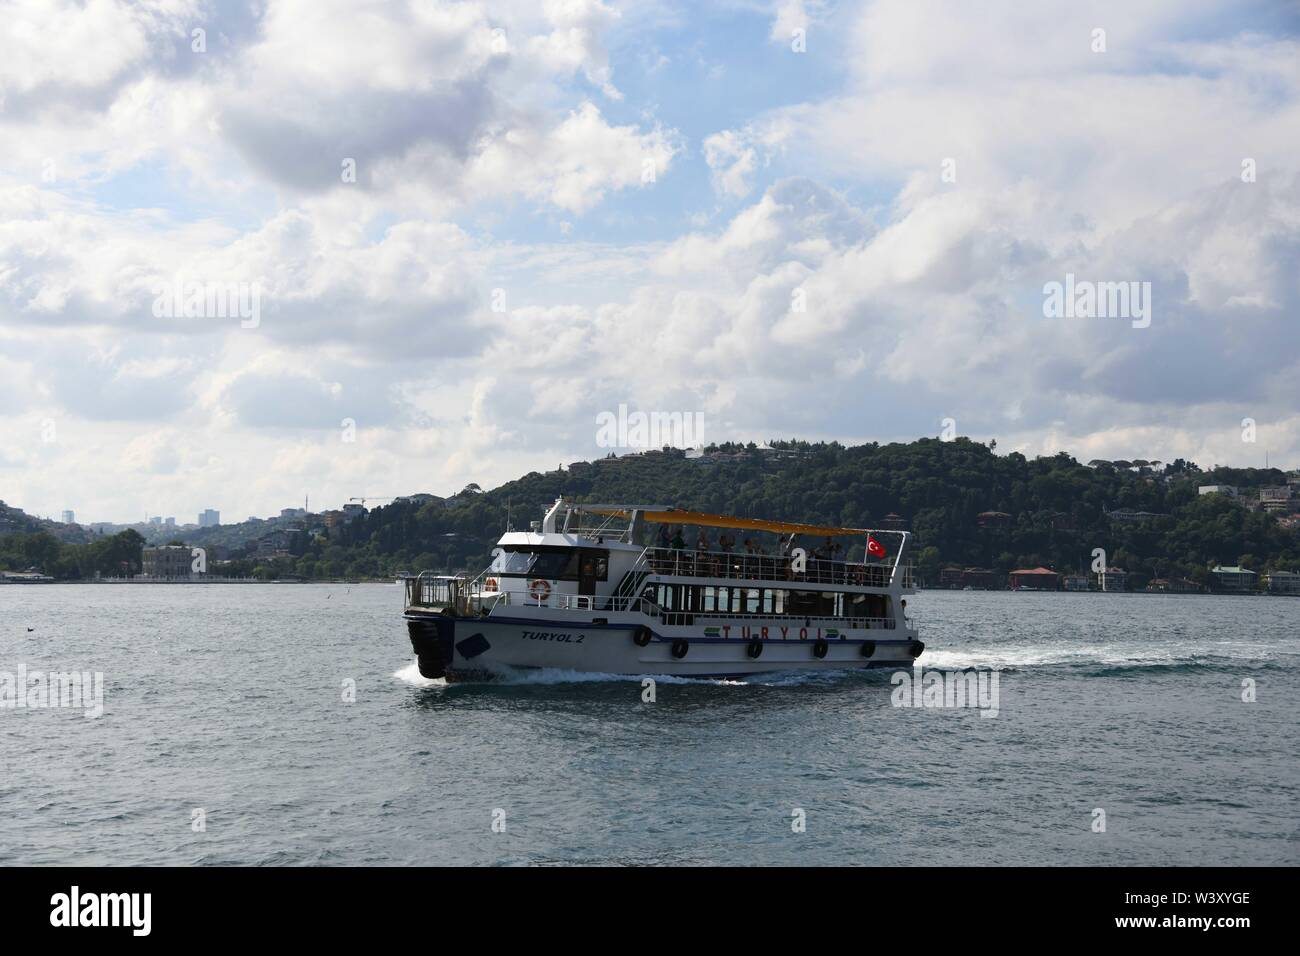 Istanbul, Turkey. 18th July, 2019. A cruise ship sails on the water of the Bosphorus strait in Istanbul, Turkey, July 18, 2019. Turkey's biggest city Istanbul allured a record number of tourists during the first five months of this year, thanks to an environment of peace, affordable prices and diversified tourism products. Between January and May, 5.4 million foreigners visited Istanbul, marking a year-on-year increase of 11 percent, according to the data unveiled by the Istanbul Provincial Directorate of Culture and Tourism. Credit: Xu Suhui/Xinhua/Alamy Live News - Stock Image